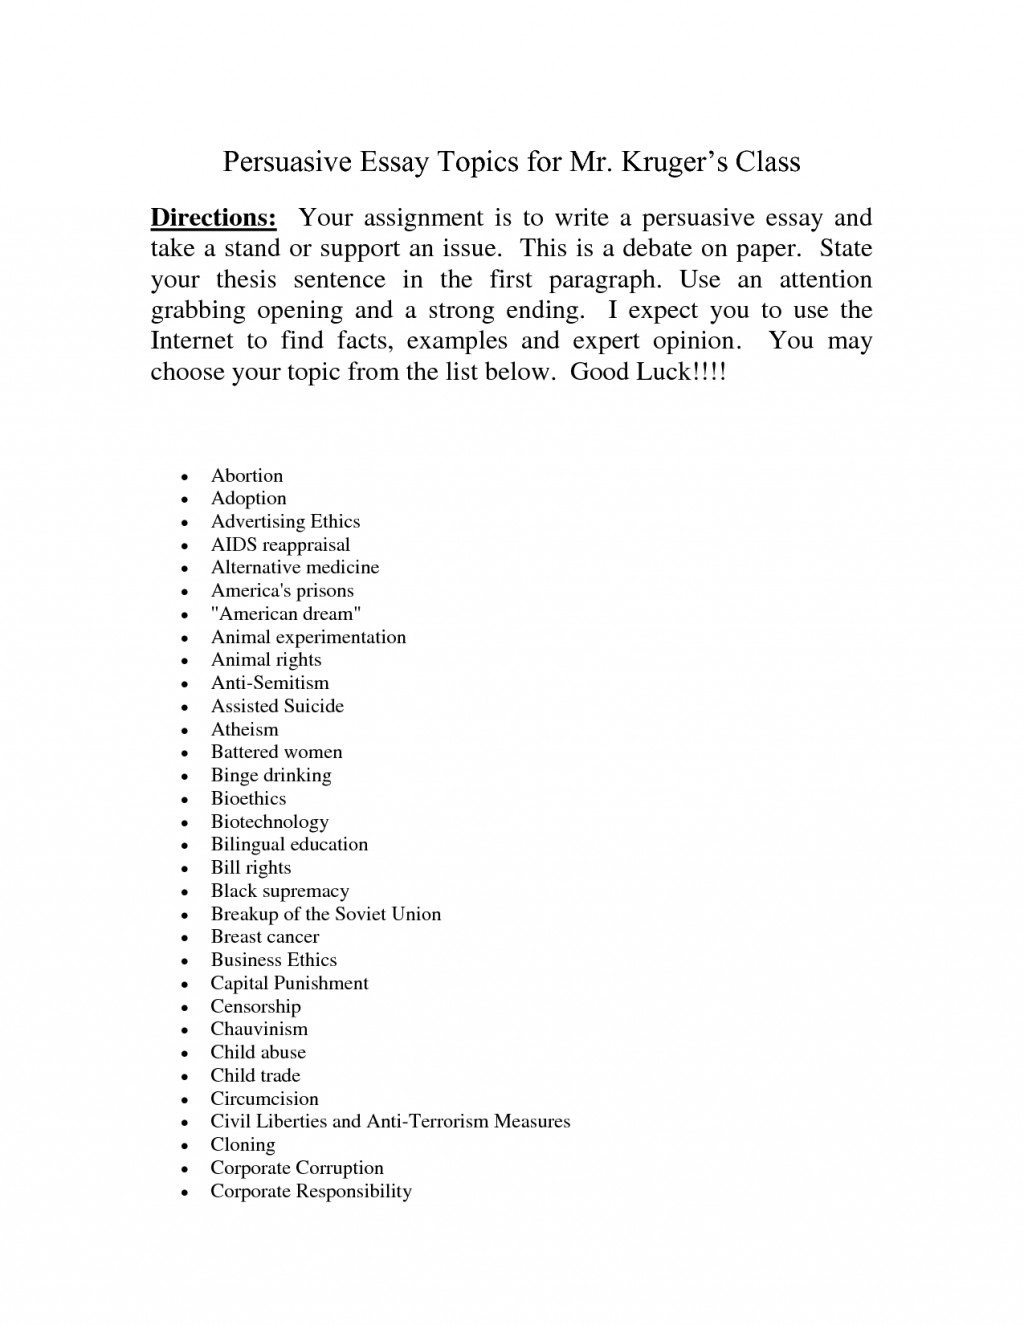 002 Essay Topic Ideas Example Persuasive Topics Outline Easy For High School Students College Essays Applicati 7th Graders Primary Middle Elementary Outstanding University Narrative 6th Large